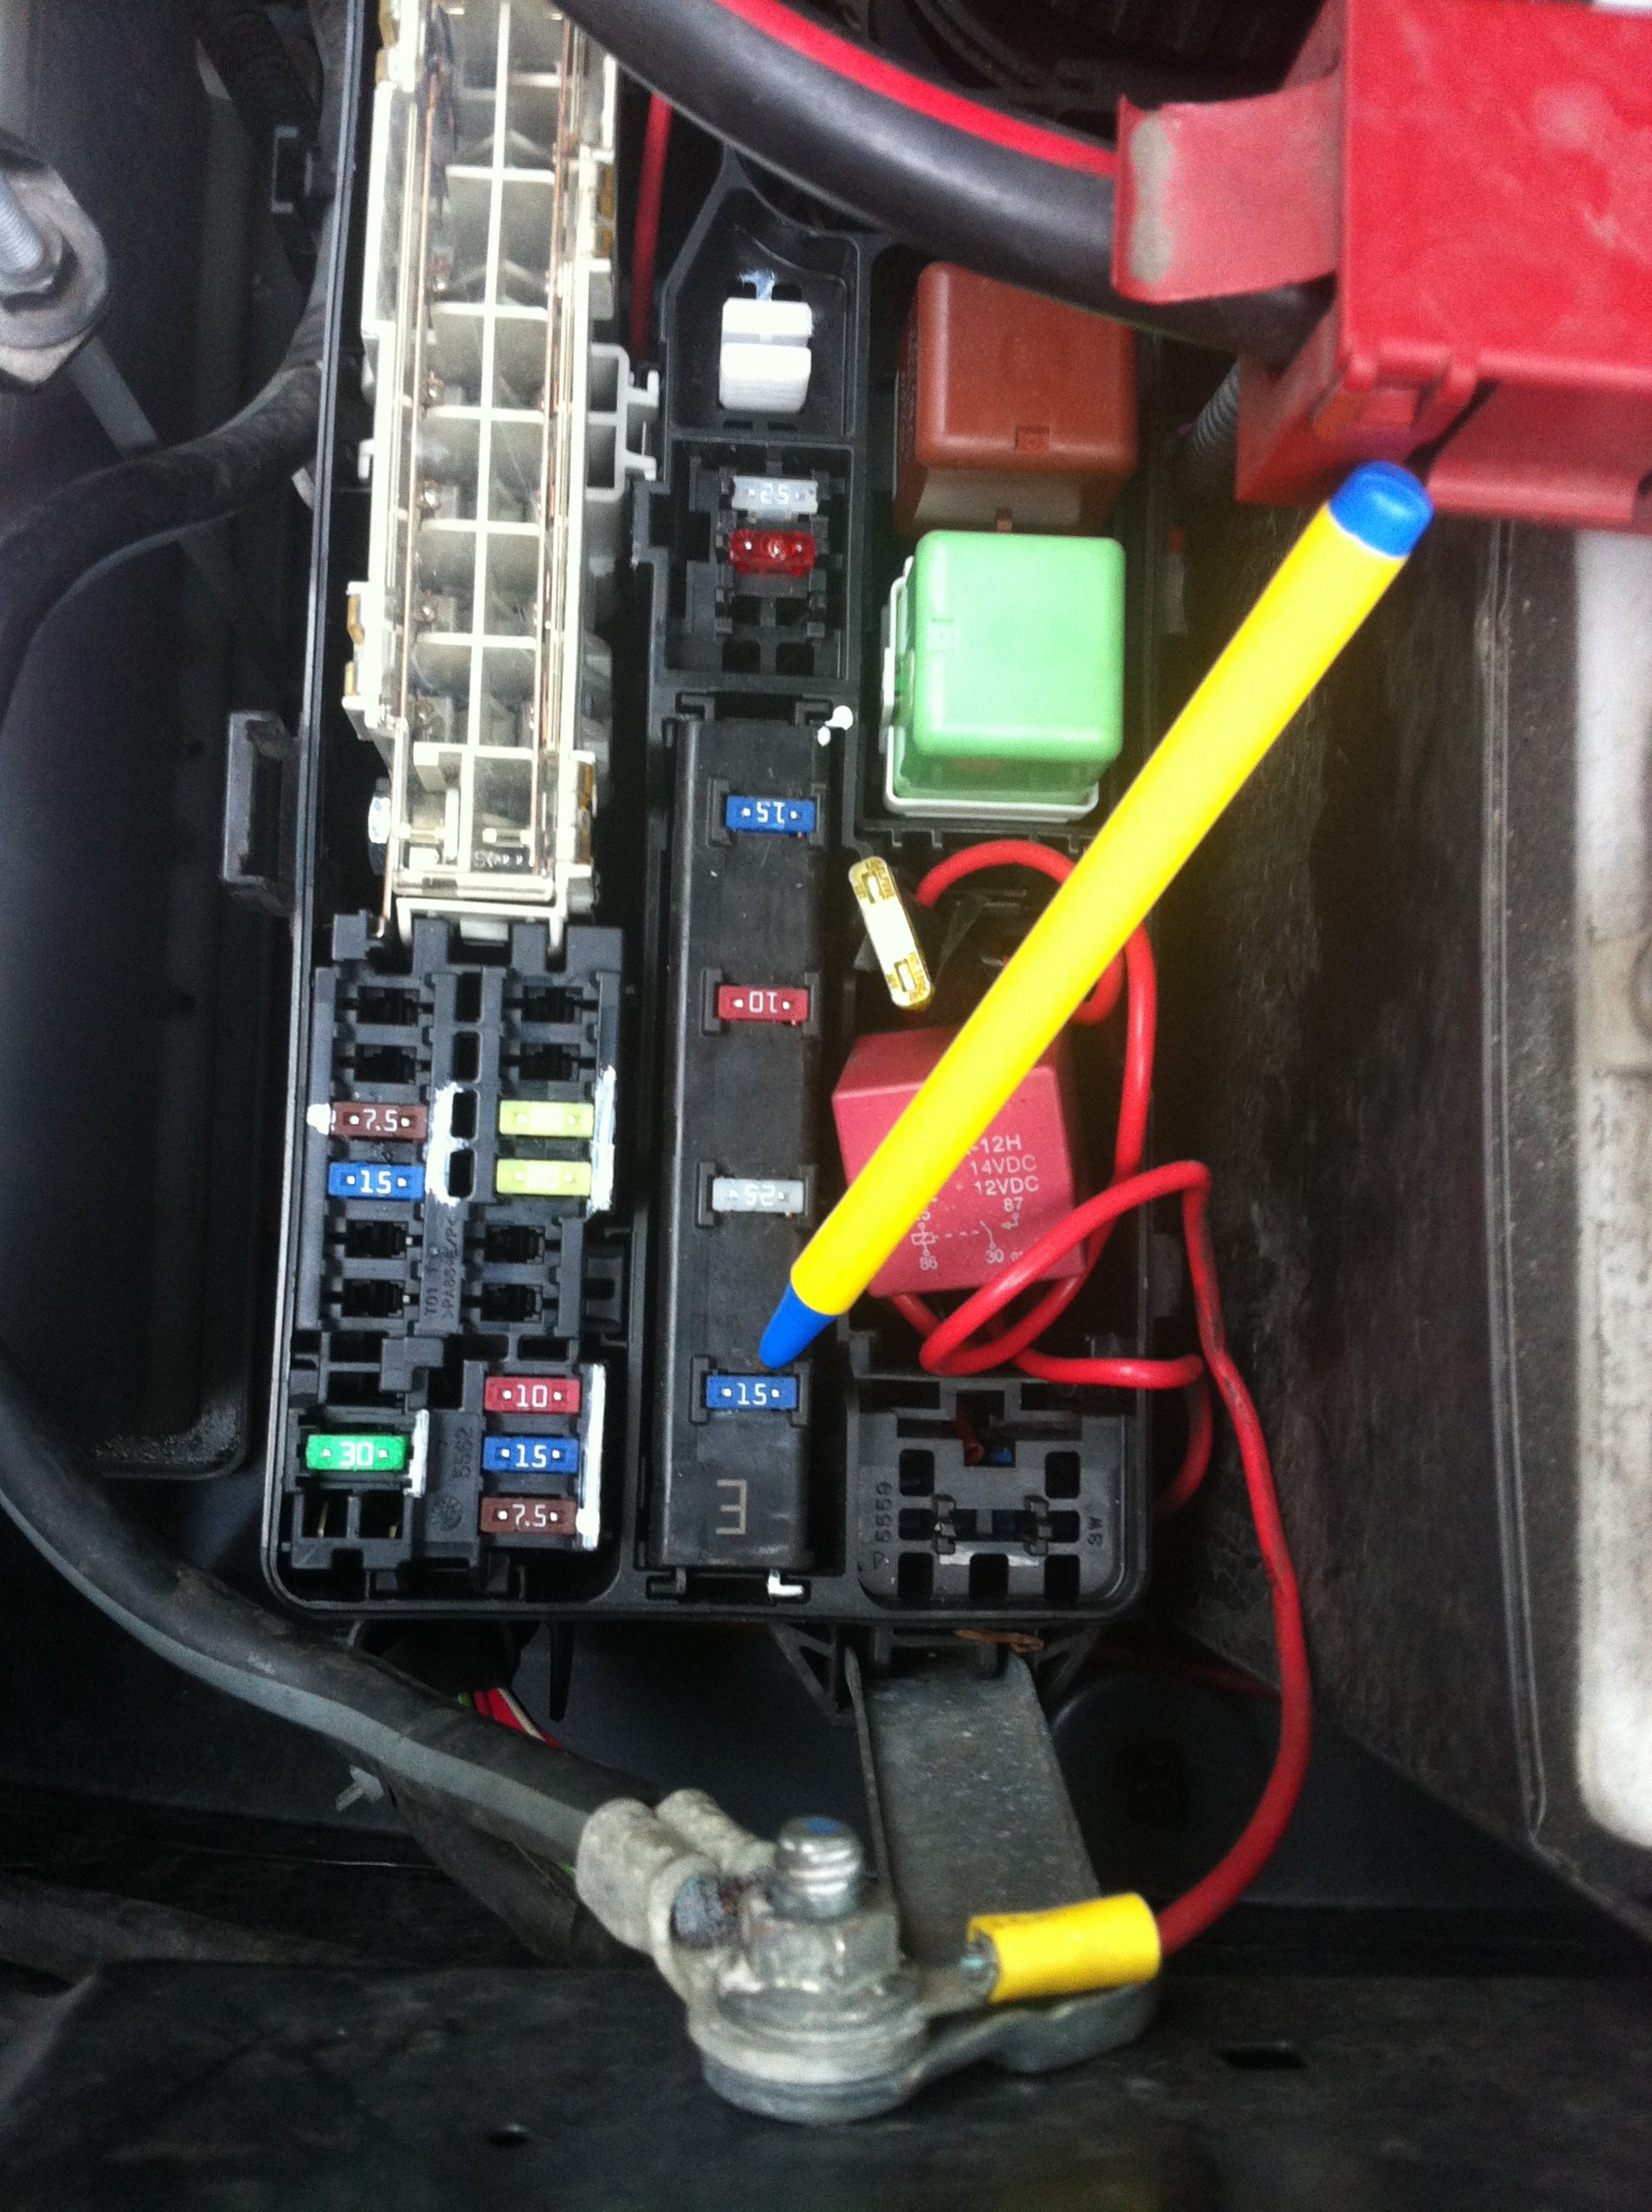 Toyota Hilux 2008 Fuse Box Diagram Trusted Wiring Echo Need To Locate The Magnetic Clutch Relay For A C Air Rh Justanswer Com Highlander 2003